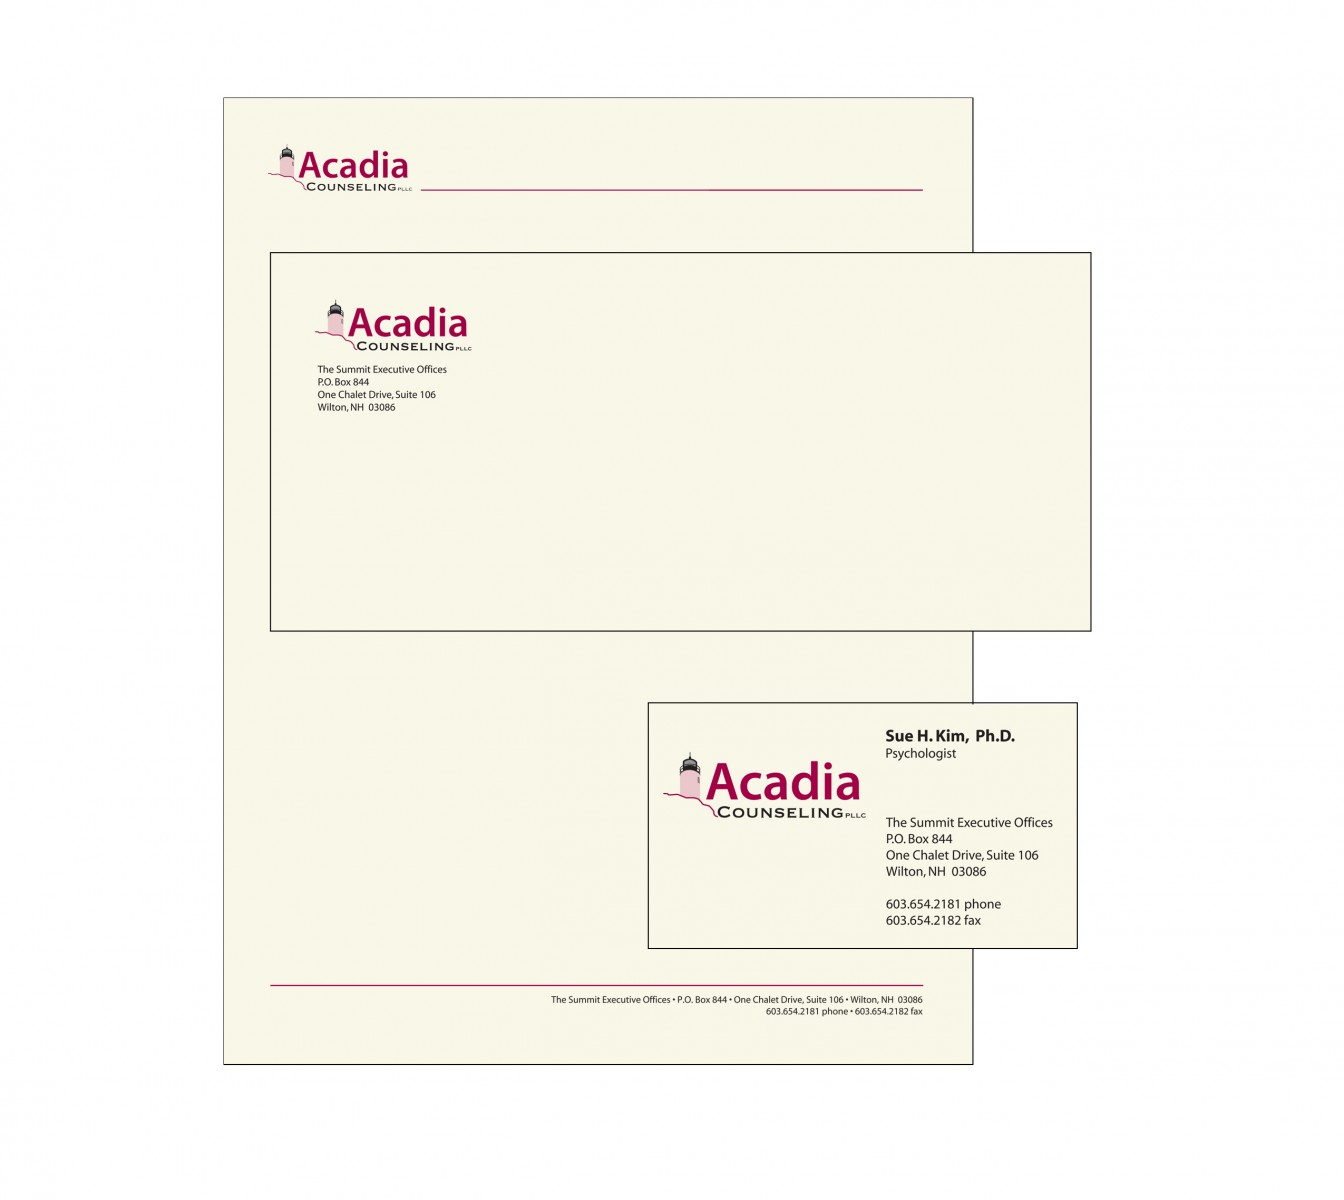 Acadia Counseling